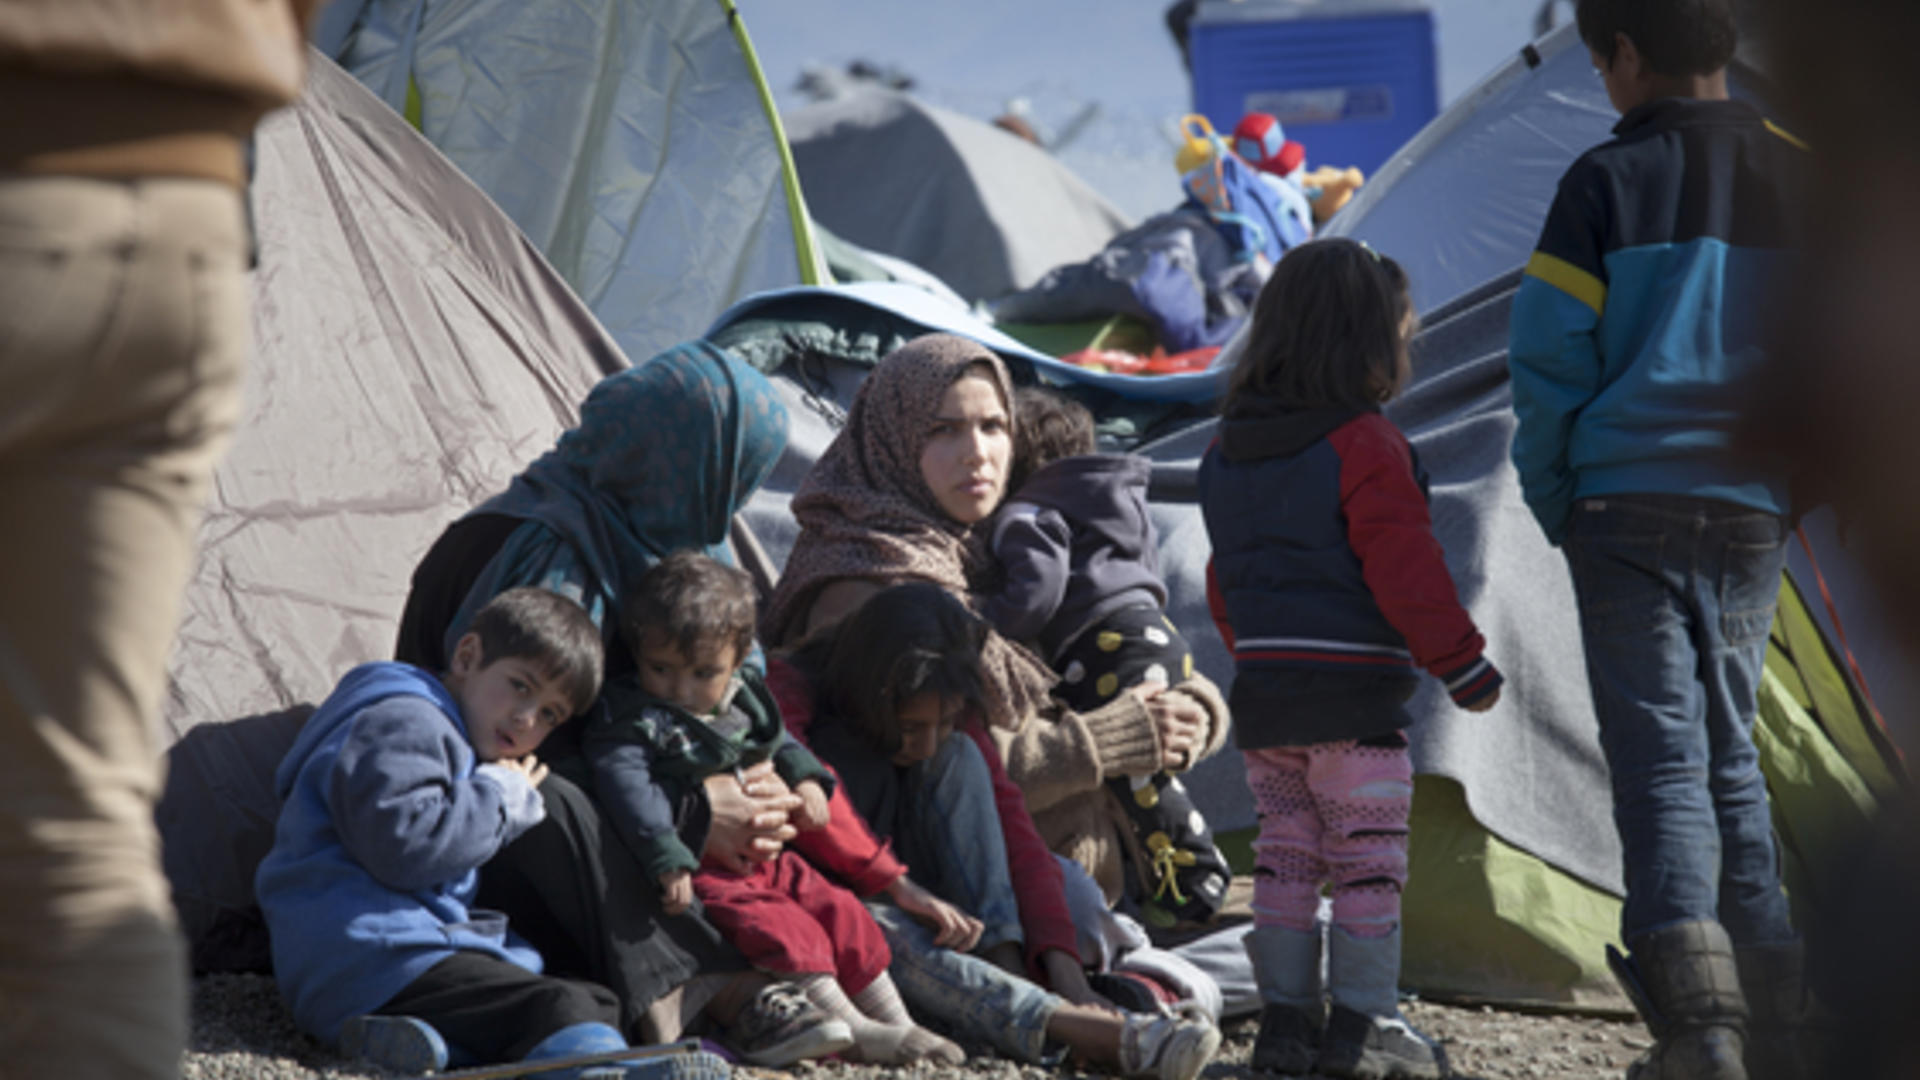 A refugee family find temporary shelter in a camp in Greece. Photo taken by Jodi Hilton for the IRC.